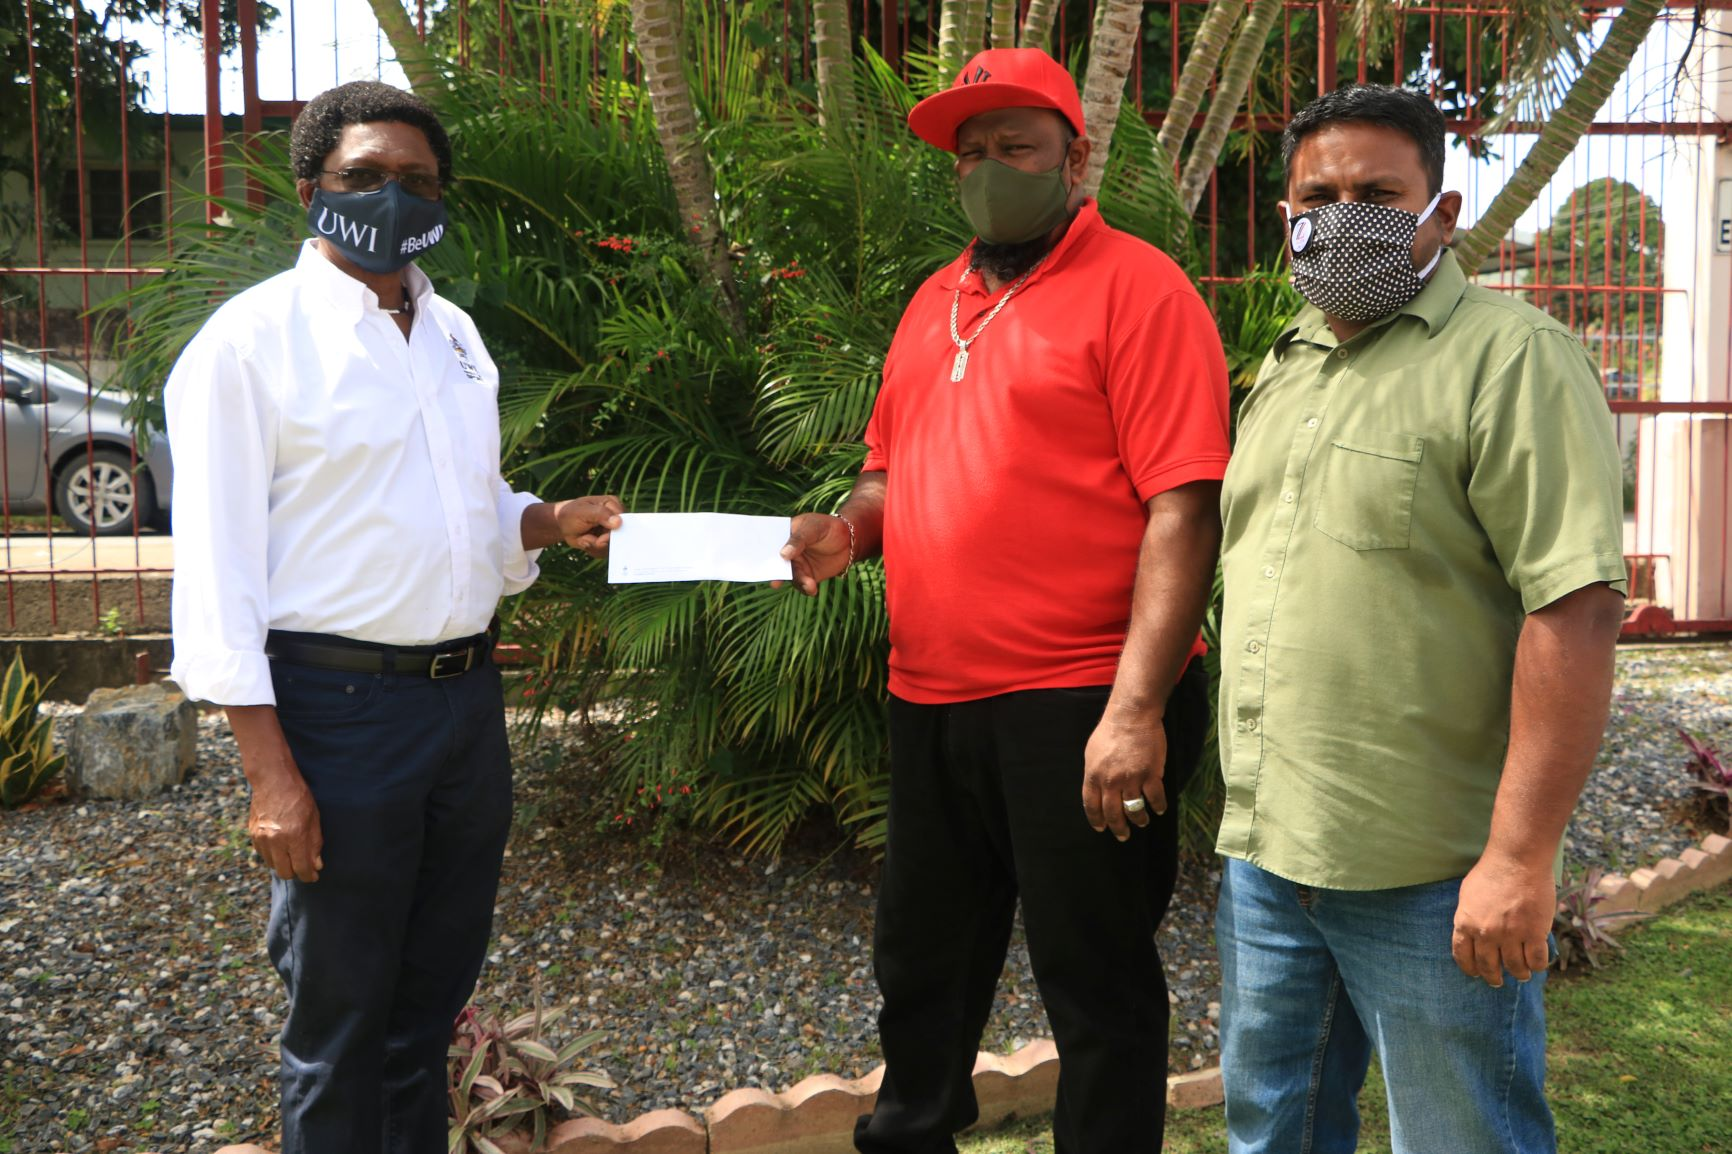 Head of the Academy of Sport, The UWI, Professor Funso Aiyejina presents a grant to Aaron Ramraj, father of CIP participant Ishmeel Ramraj, who is accompanied by Programme Coordinator, Community Inclusion Programme (CIP), Trinidad, Ryerson Bhagoo at The UWI SPEC